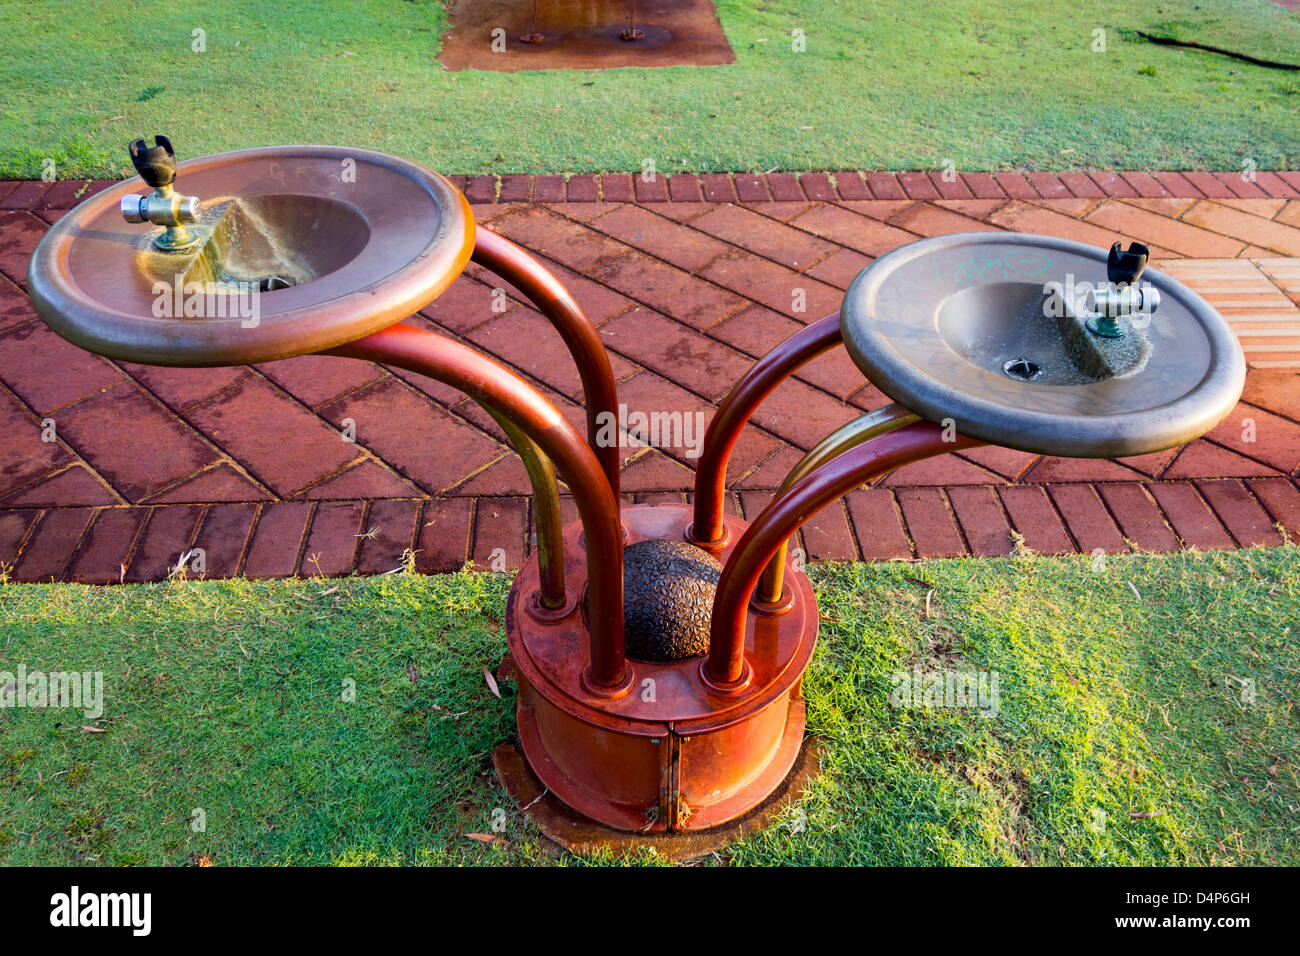 Water drinking fountain - Stock Image